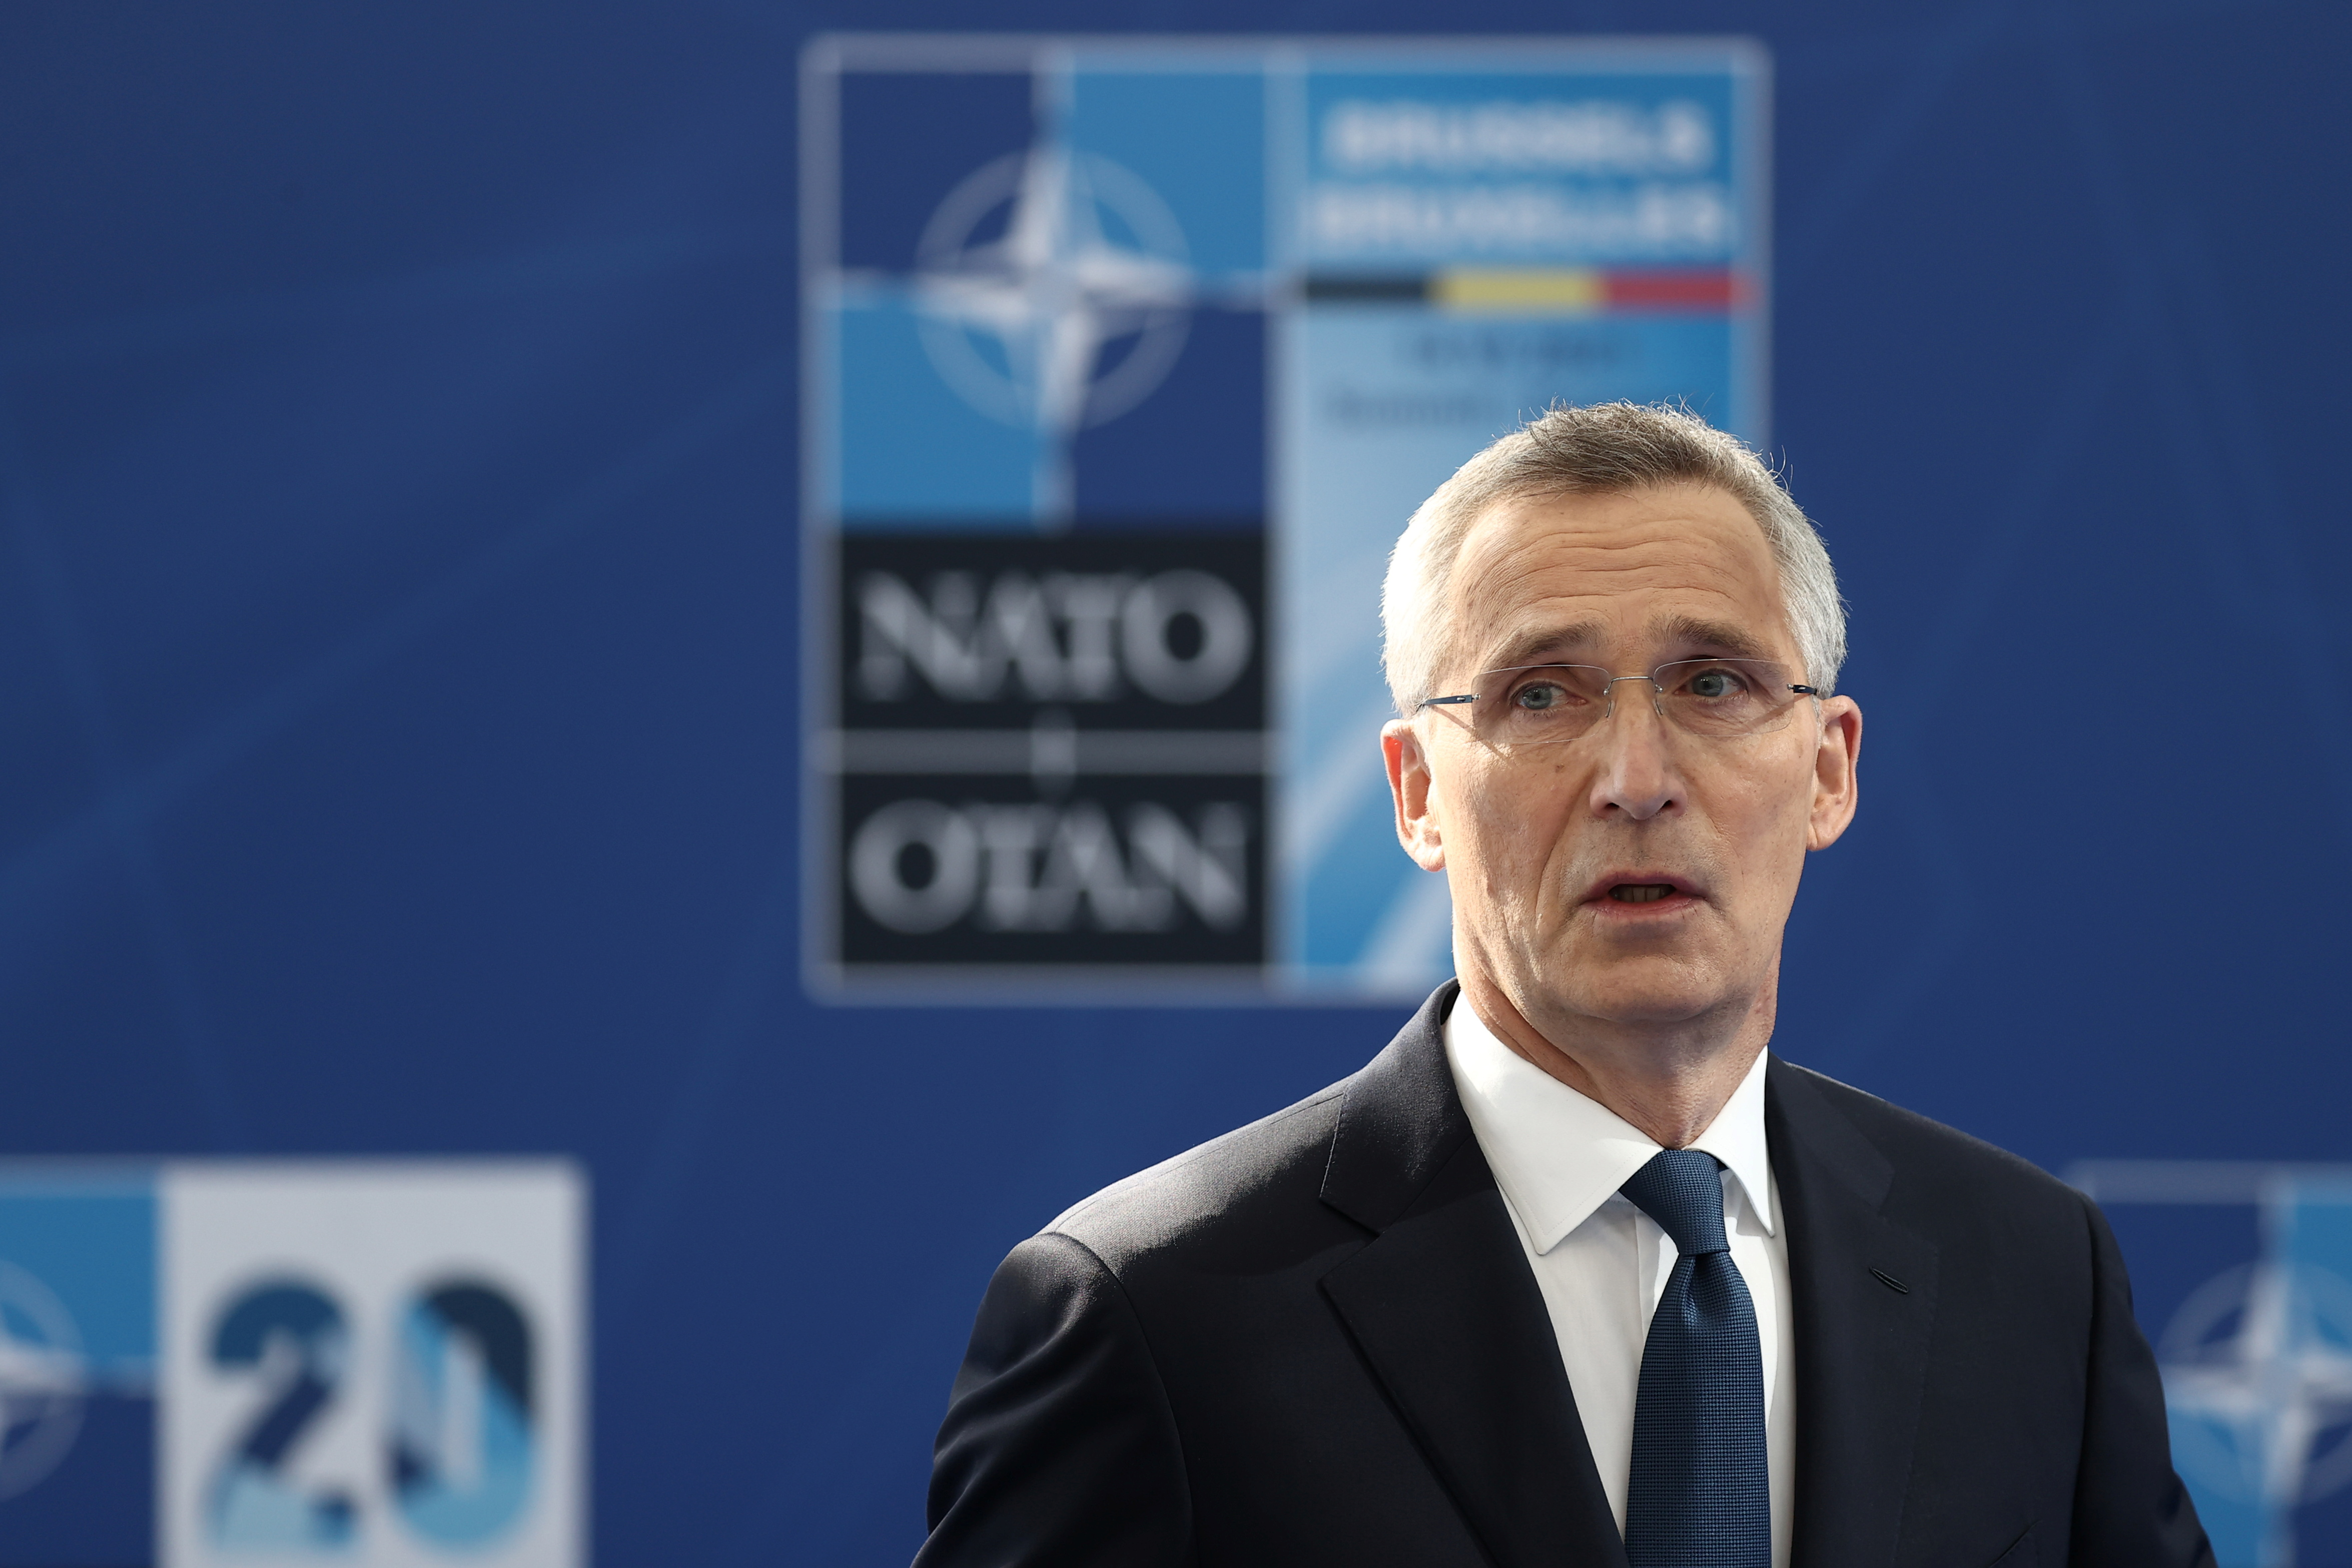 NATO leader calls for tough stance on China at start of summit NATO News